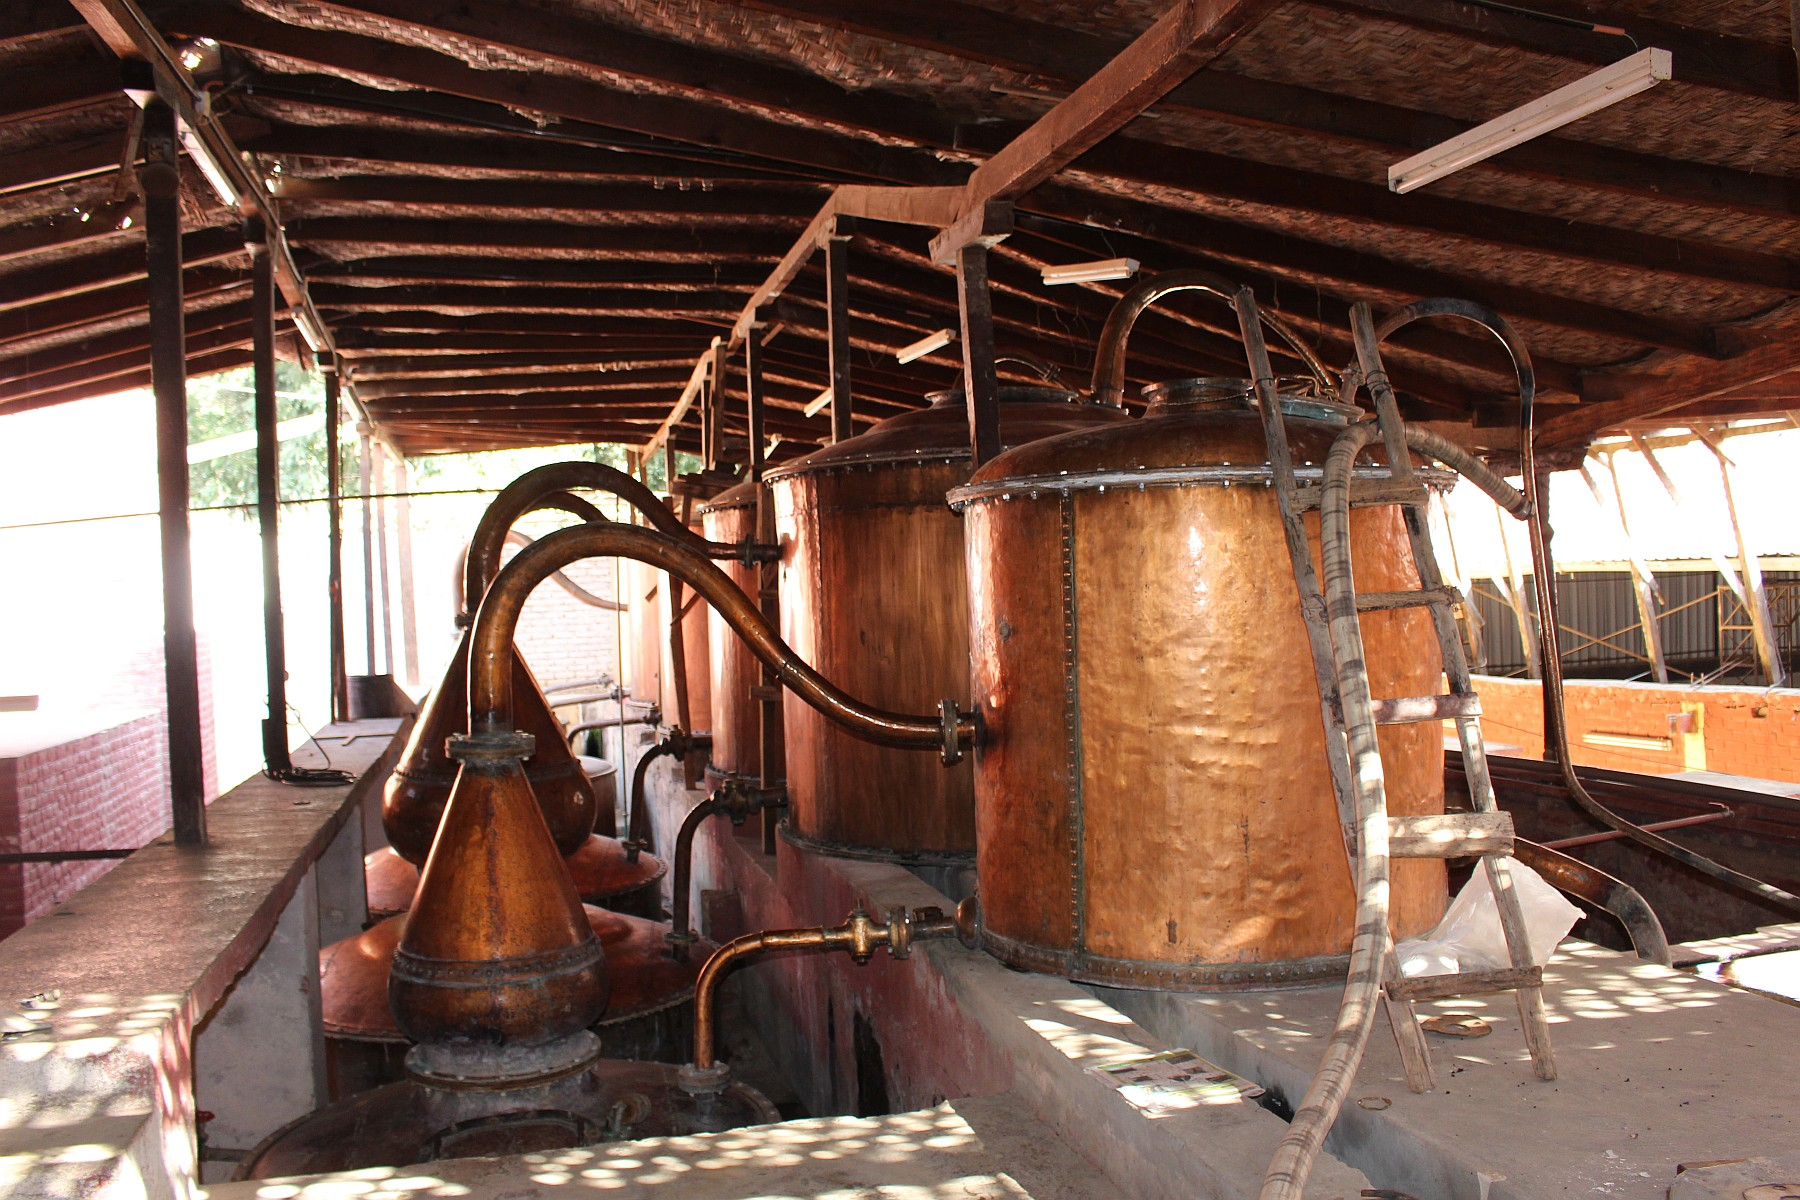 Stills at Bodegas Vista Alegre